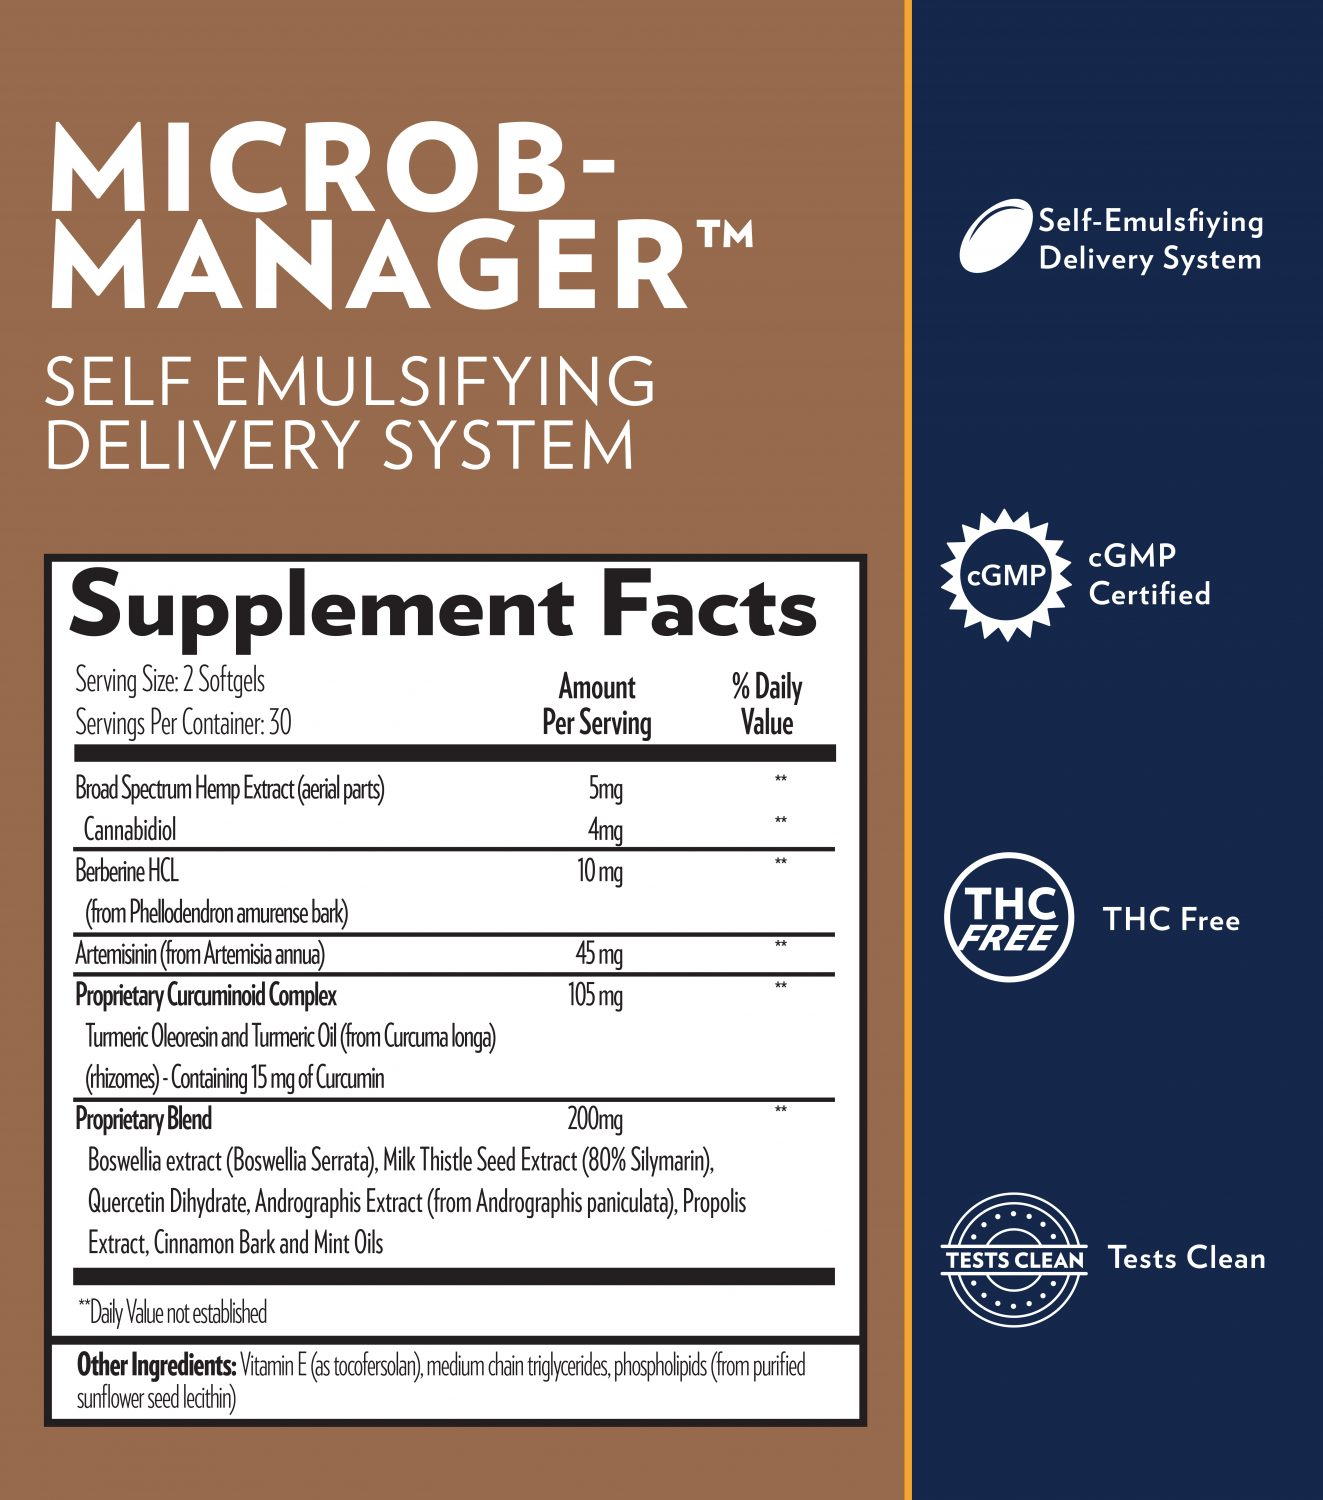 Microb-Manager Supplement Facts